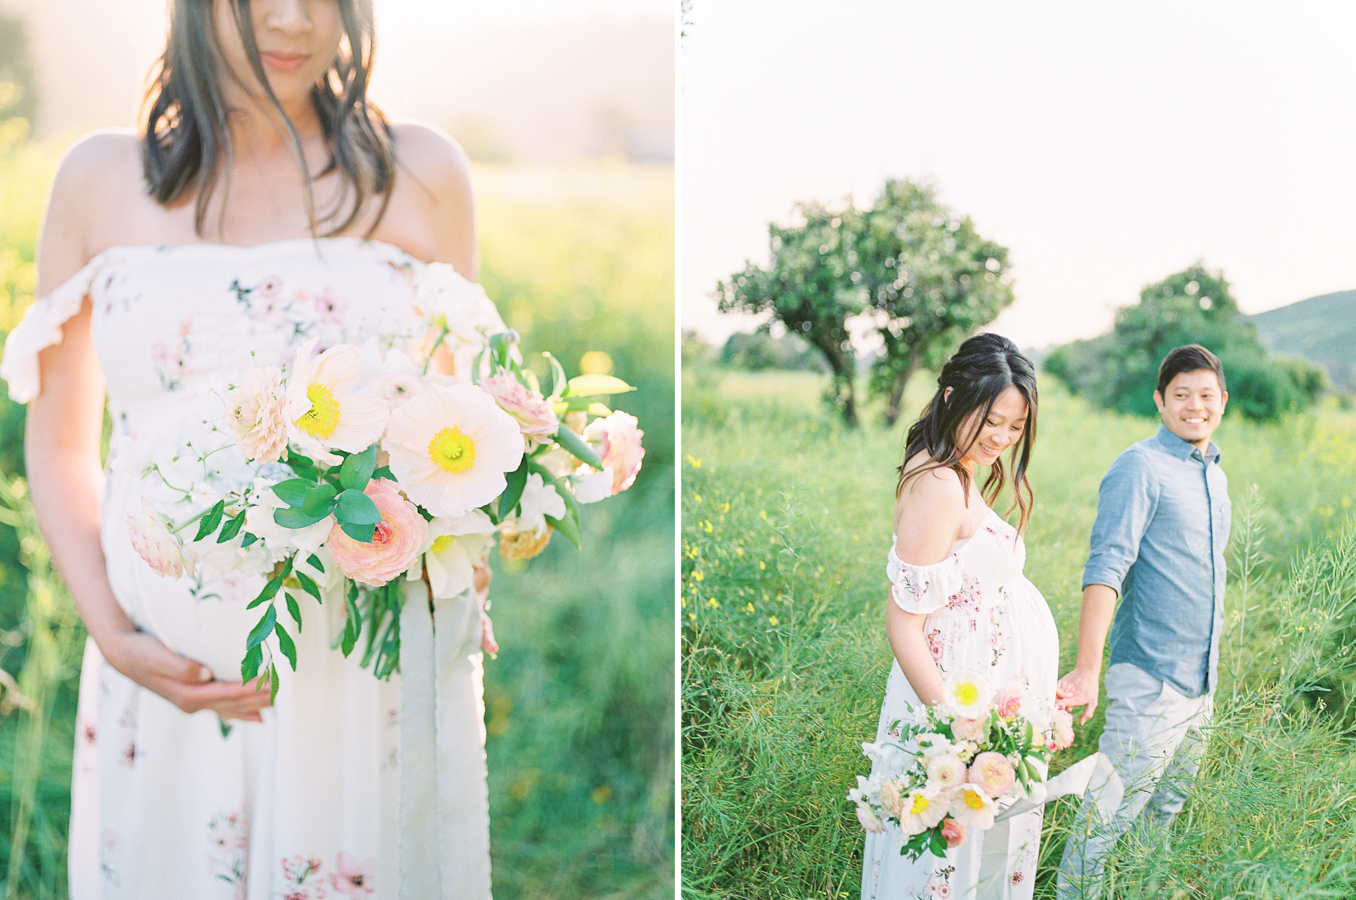 Maternity_Session_Family_Film_Photographer_Flower_Field_Los_Angeles_AKP-4.jpg